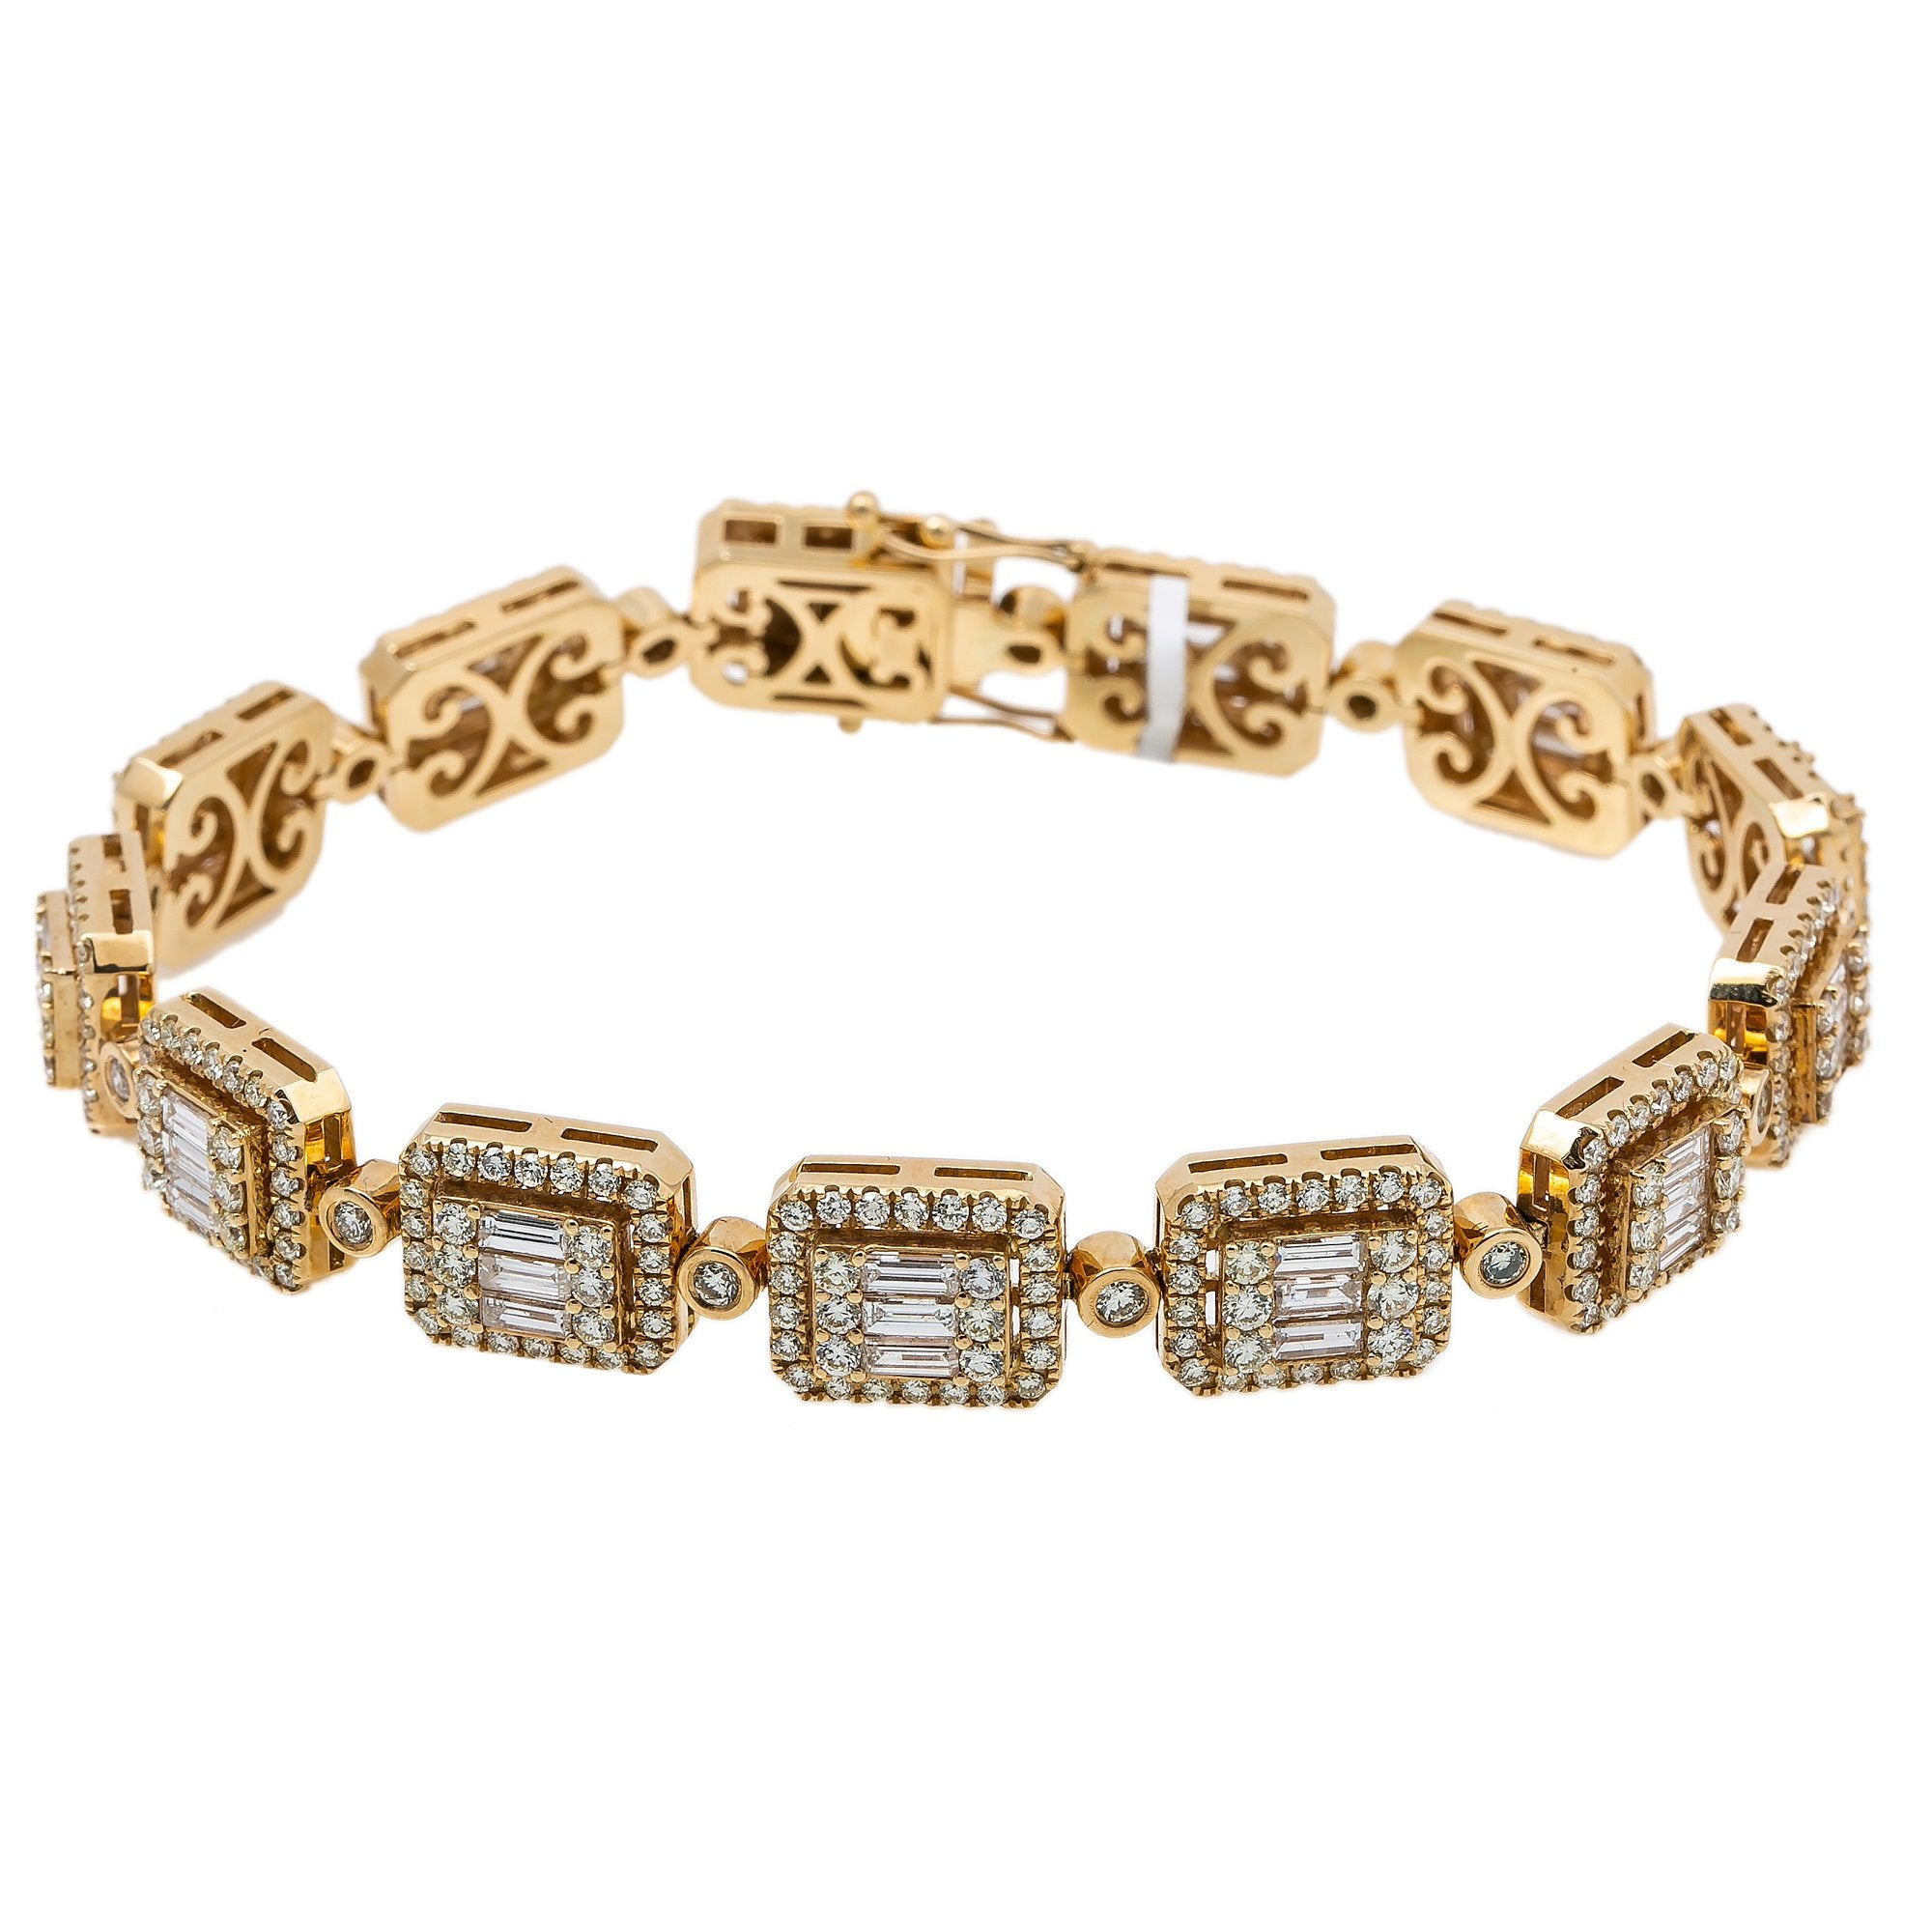 14K Yellow Gold  Men's Bracelet With 7.67 CT Of Round & Baguette Diamonds